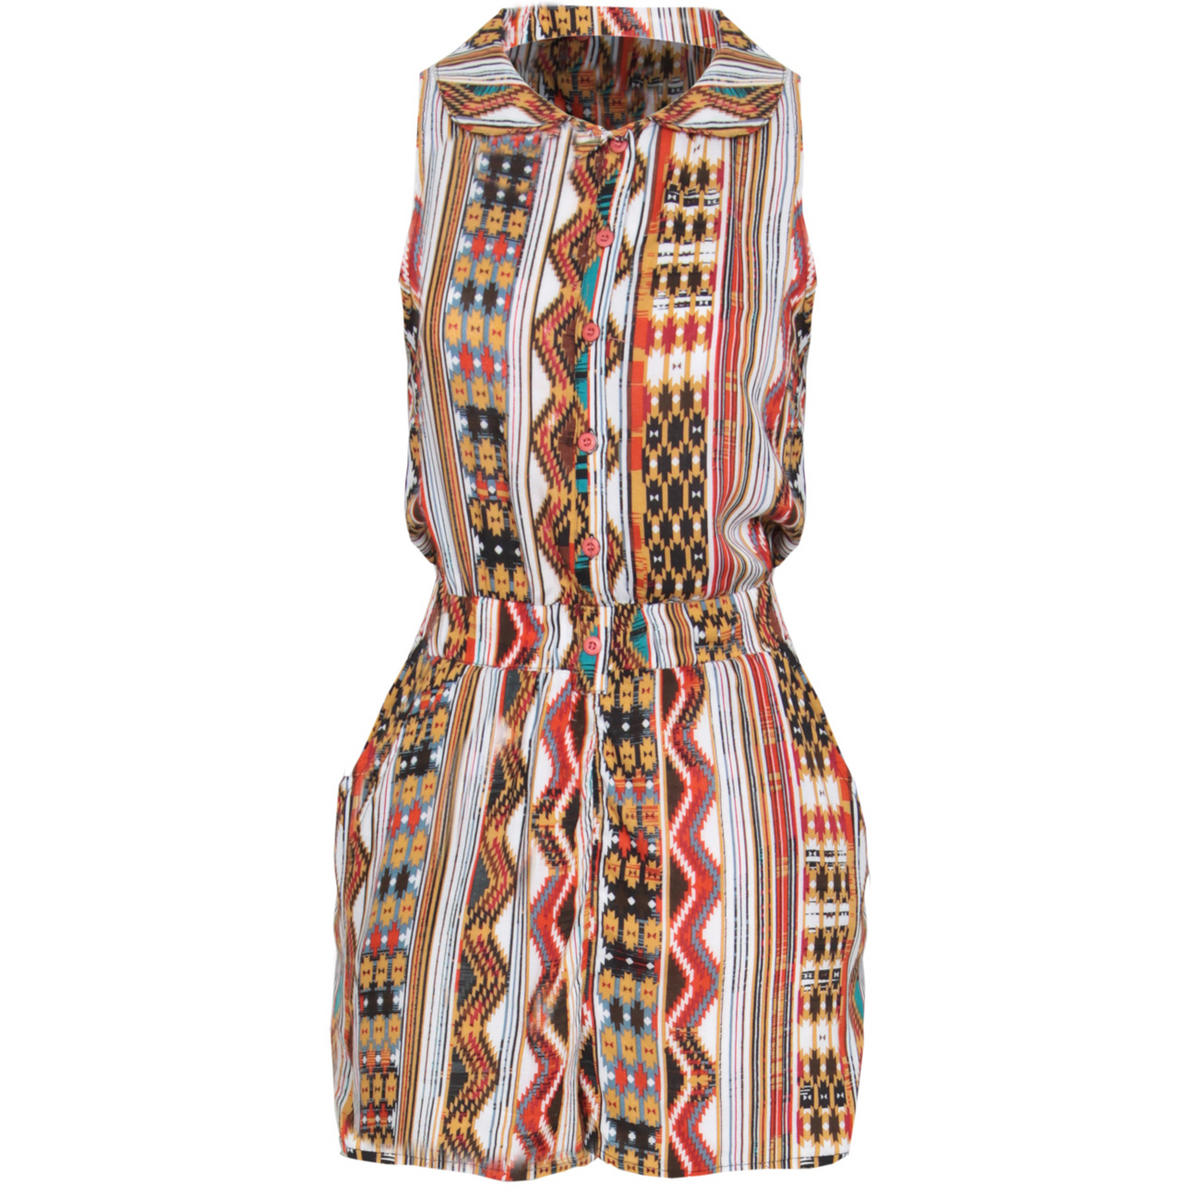 Tribal Print Peter Pan Collar Playsuit In Red Preview